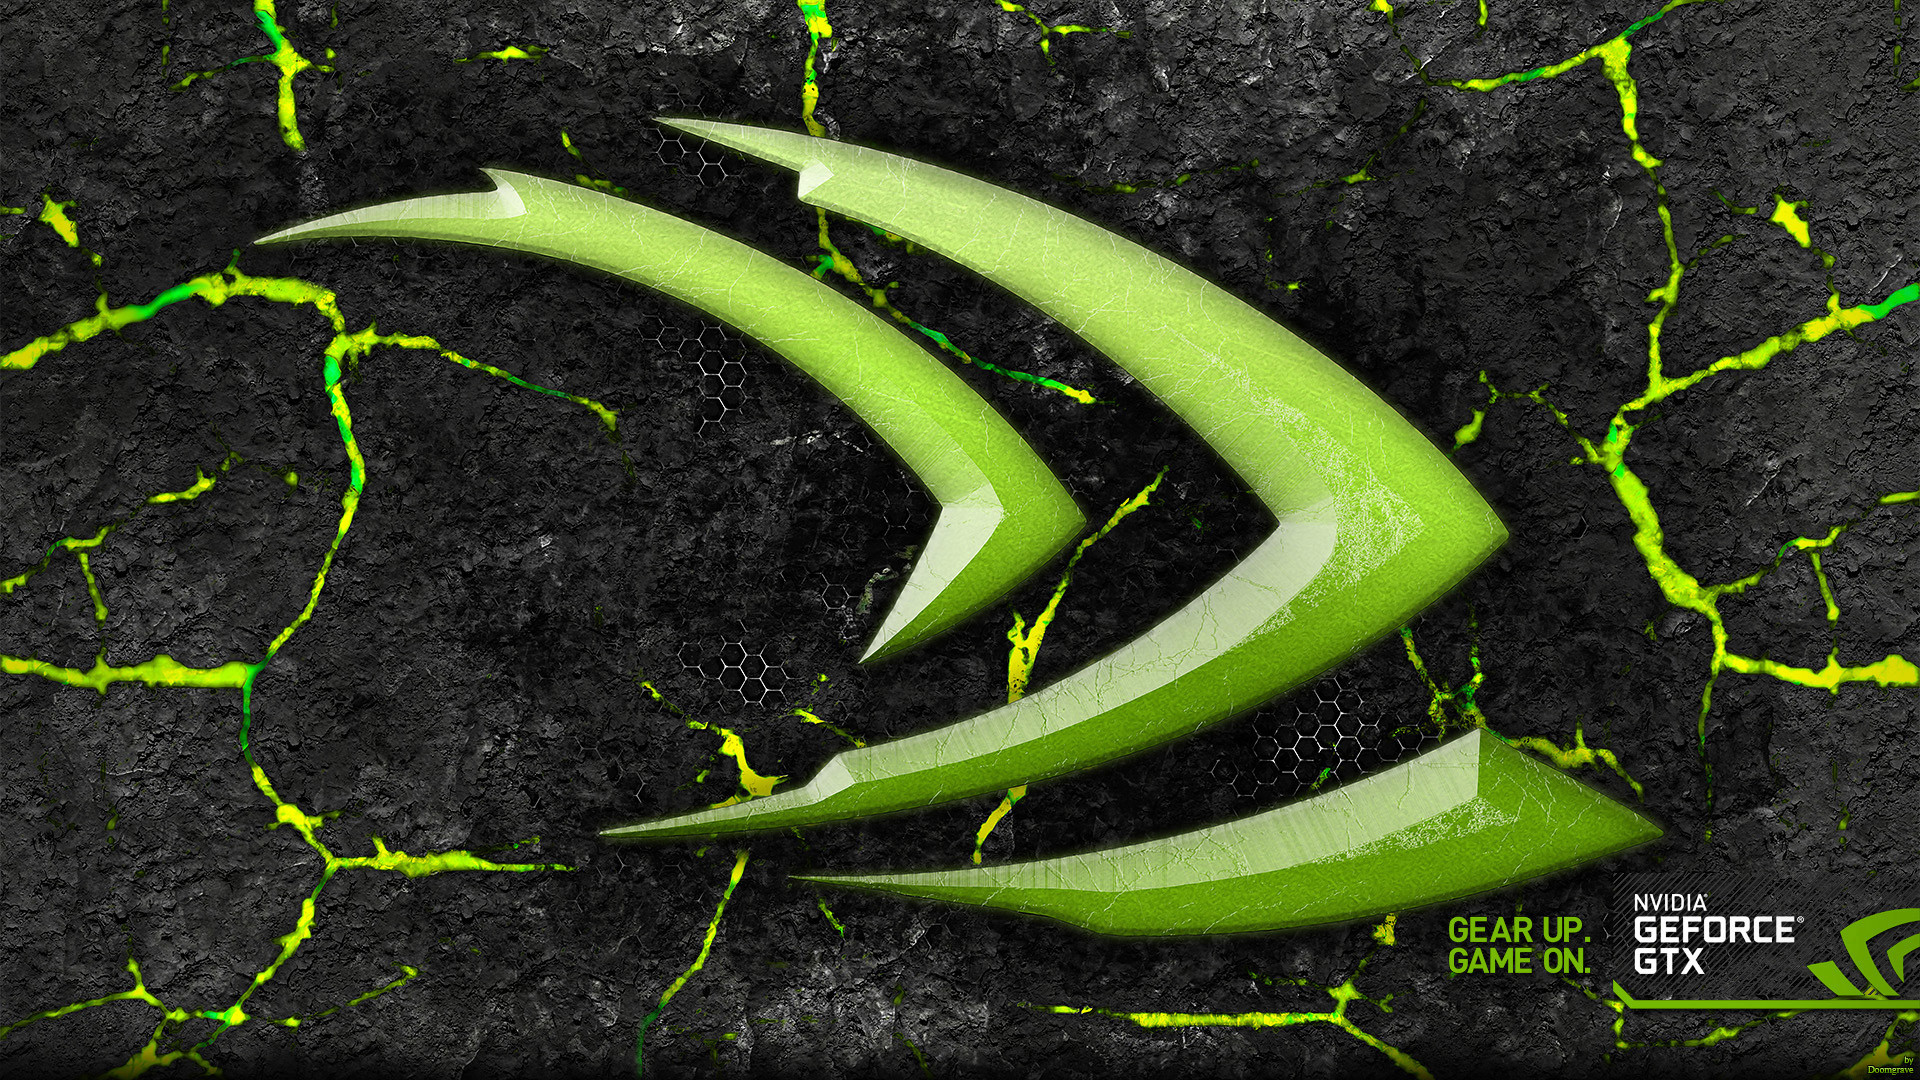 Nvidia Wallpaper 1080p Nvidia overpowered – doomgrave